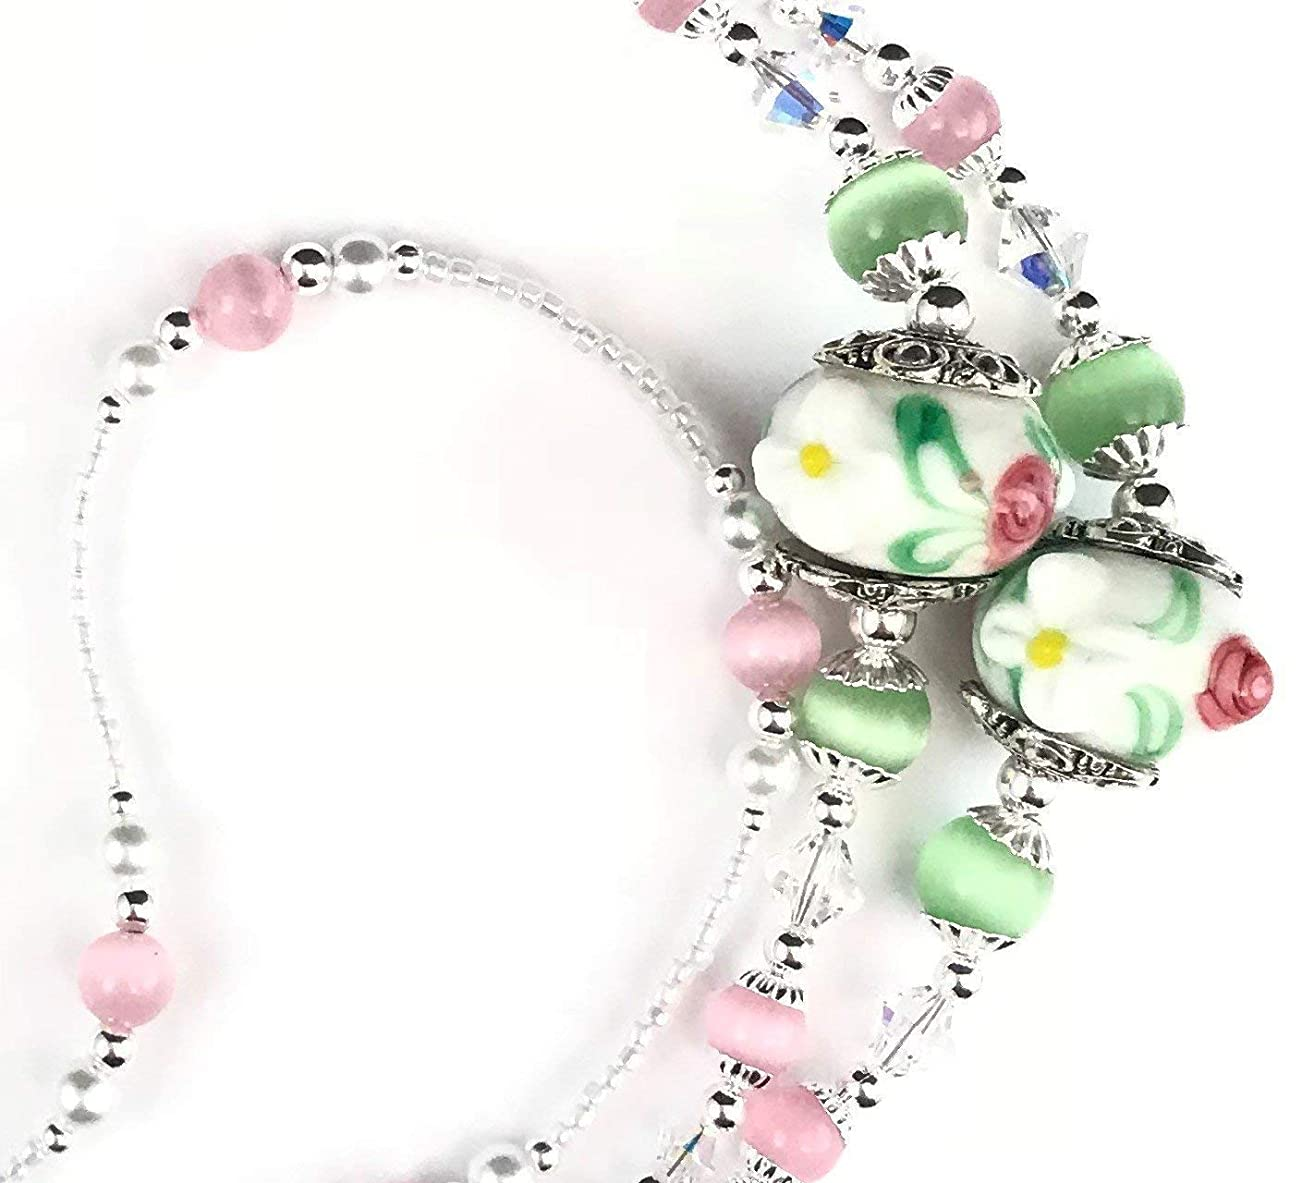 Roses and Daisies, Beaded Lanyard for Women, Badge, ID Holder, Keychain, Lanyard for Teacher, Nurse or Office, Teacher Gift, Nurse Gift, 34 inches, Lampwork Beads, White Pearls, Crystal, Handmade